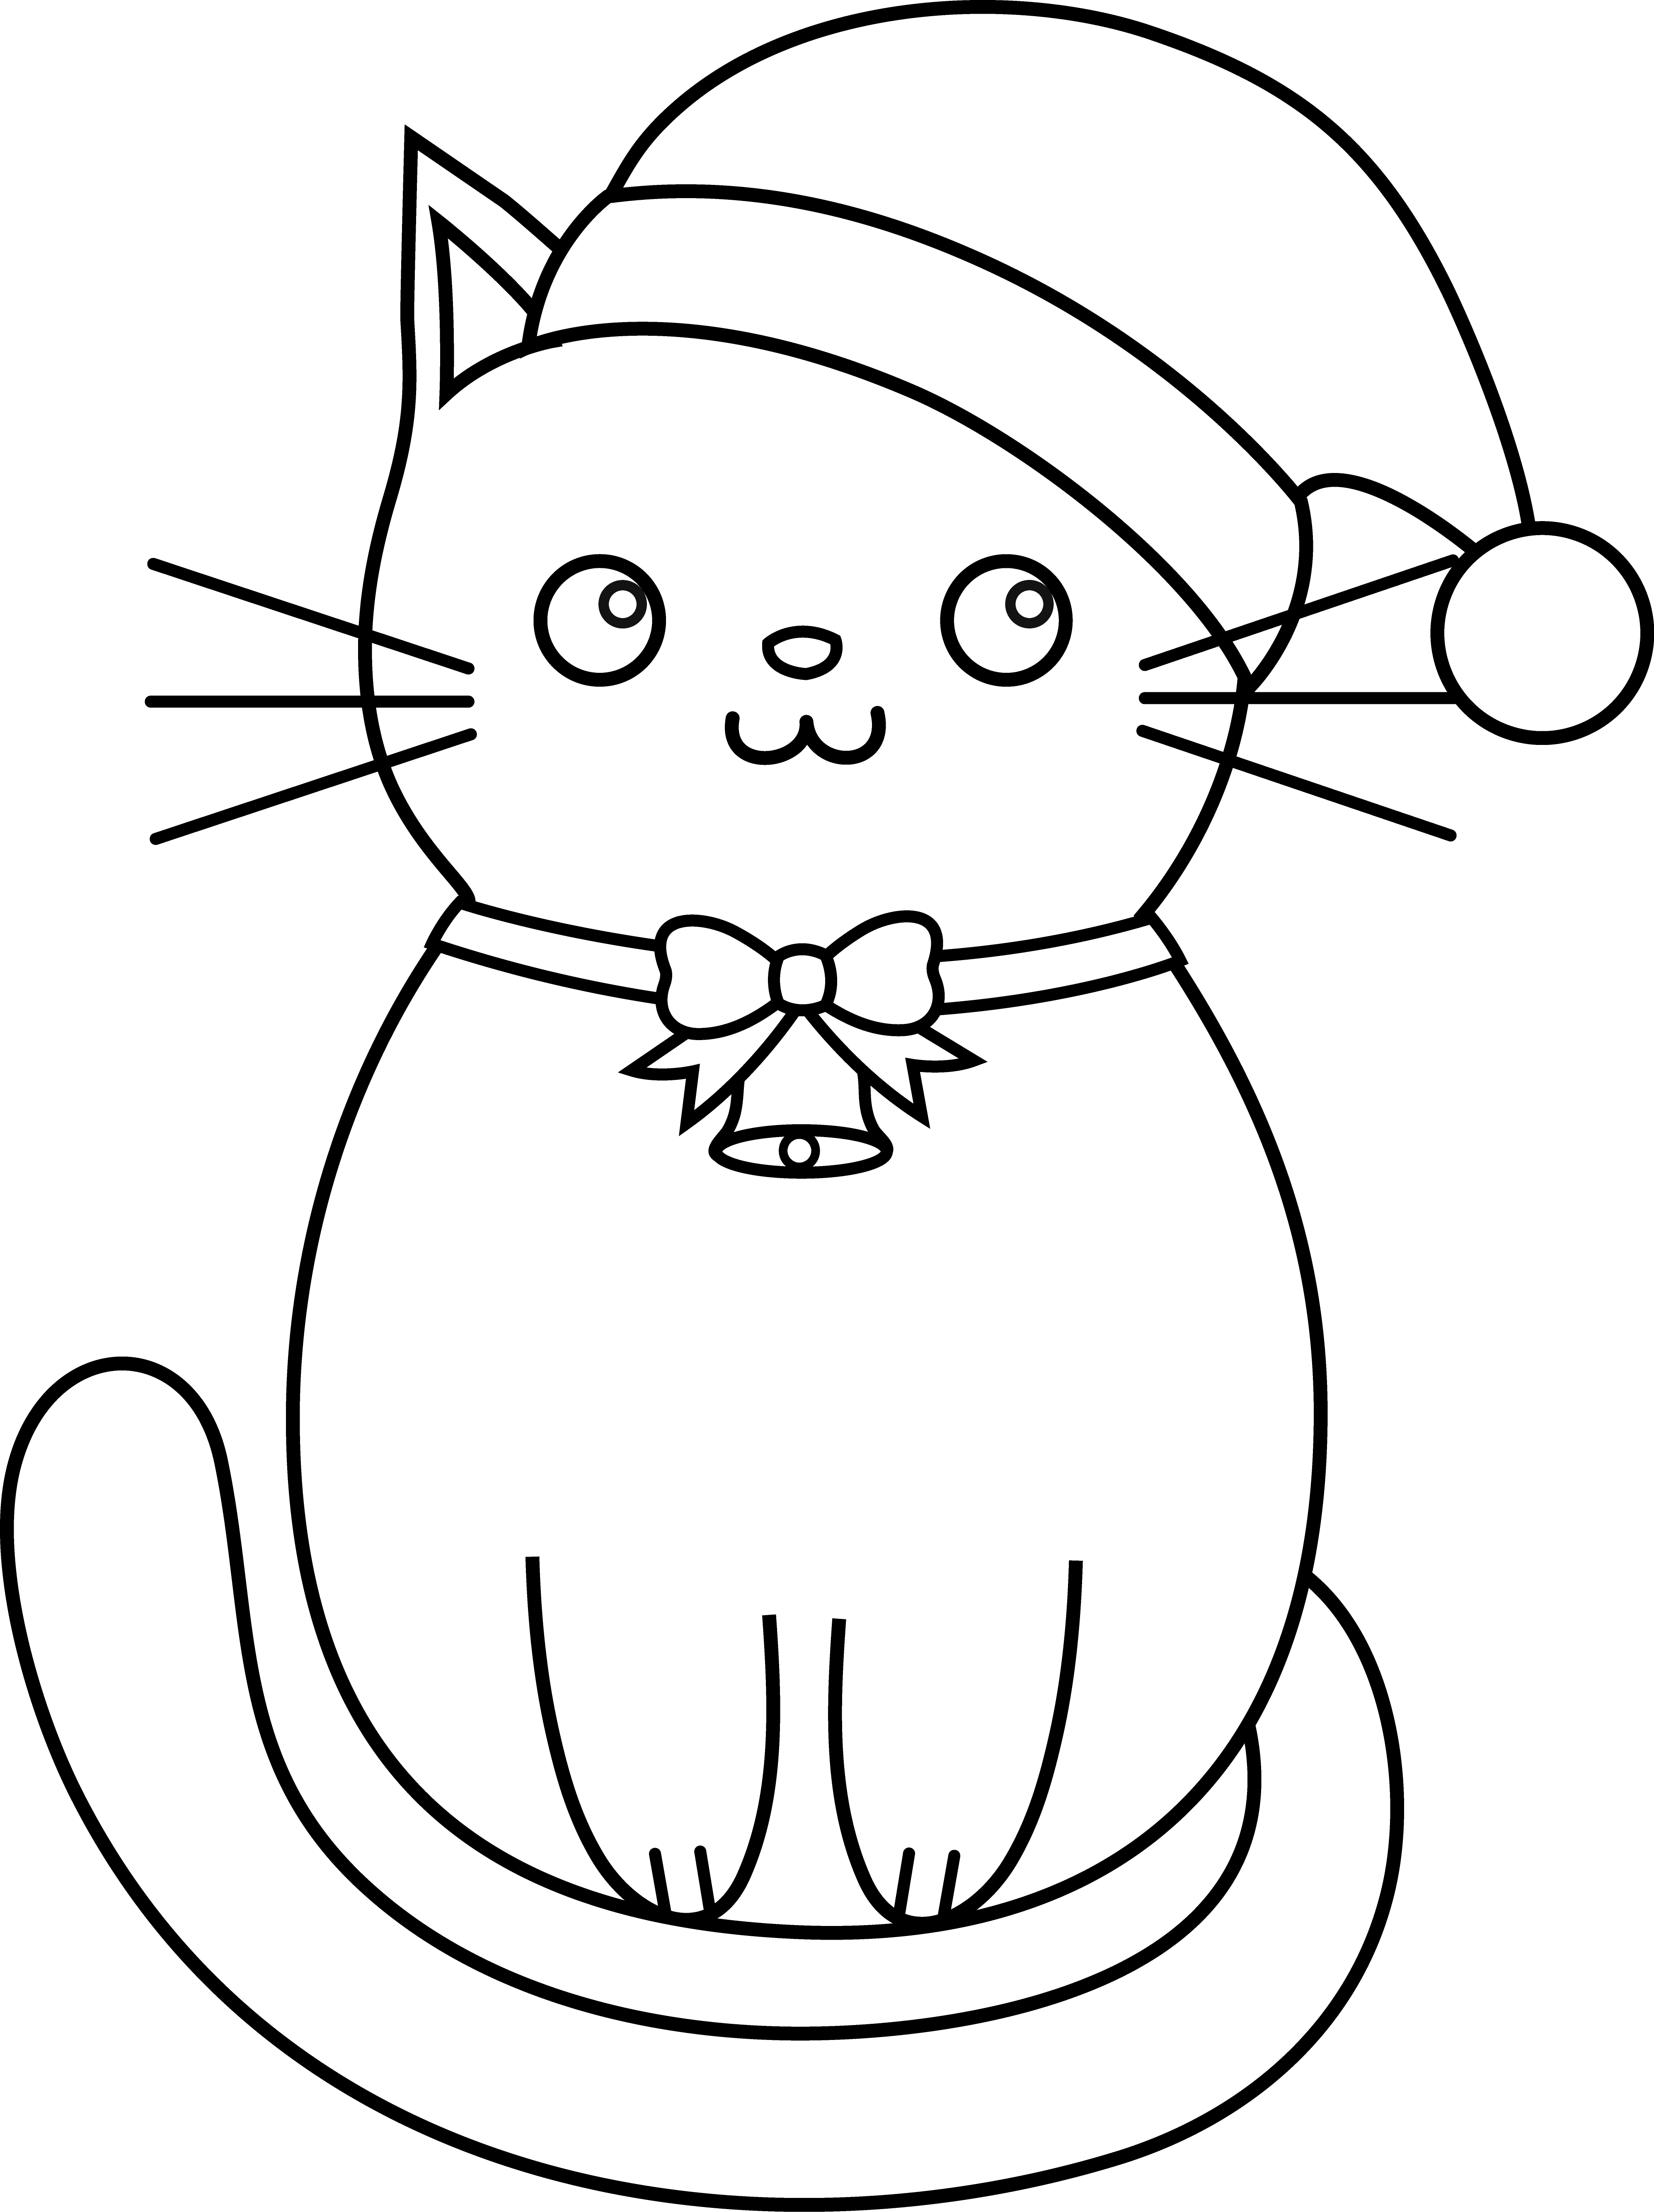 Christmas Kitty Lineart Kitty Coloring Cat Coloring Page Christmas Coloring Pages